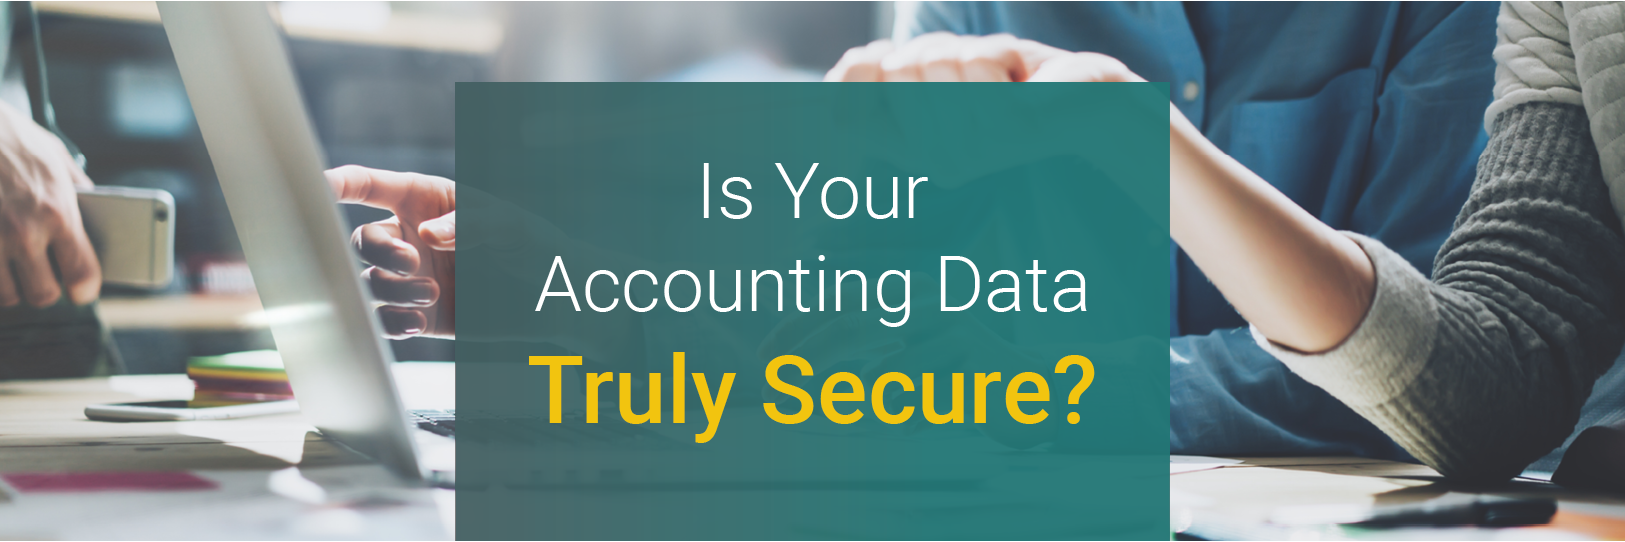 Is Your Accounting Data Truly Secure?